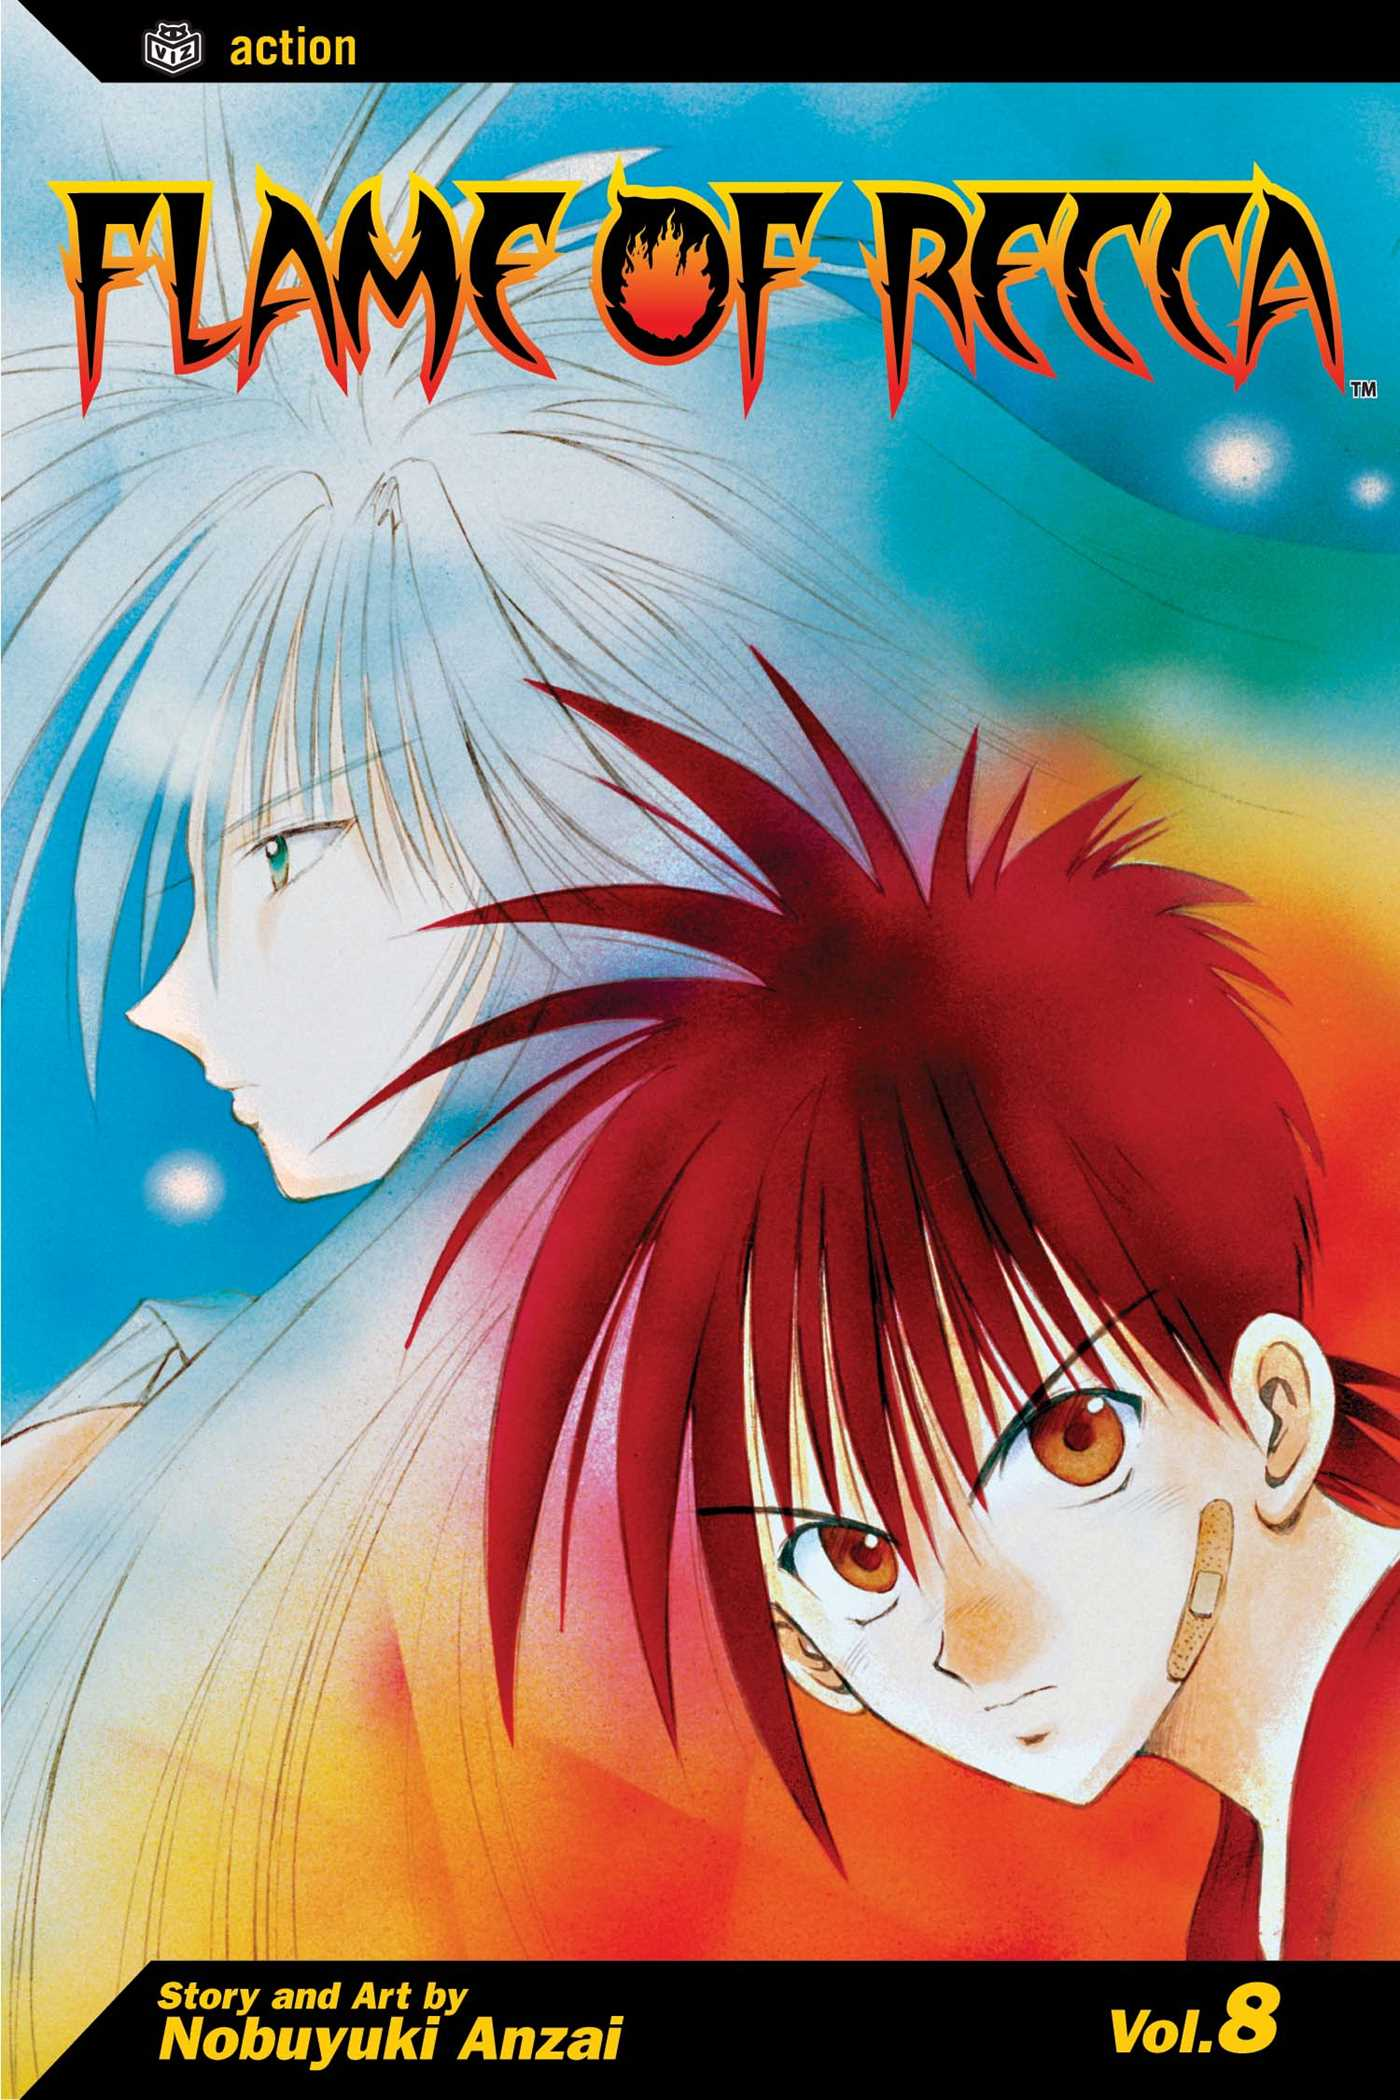 Flame-of-recca-vol-8-9781591164807_hr